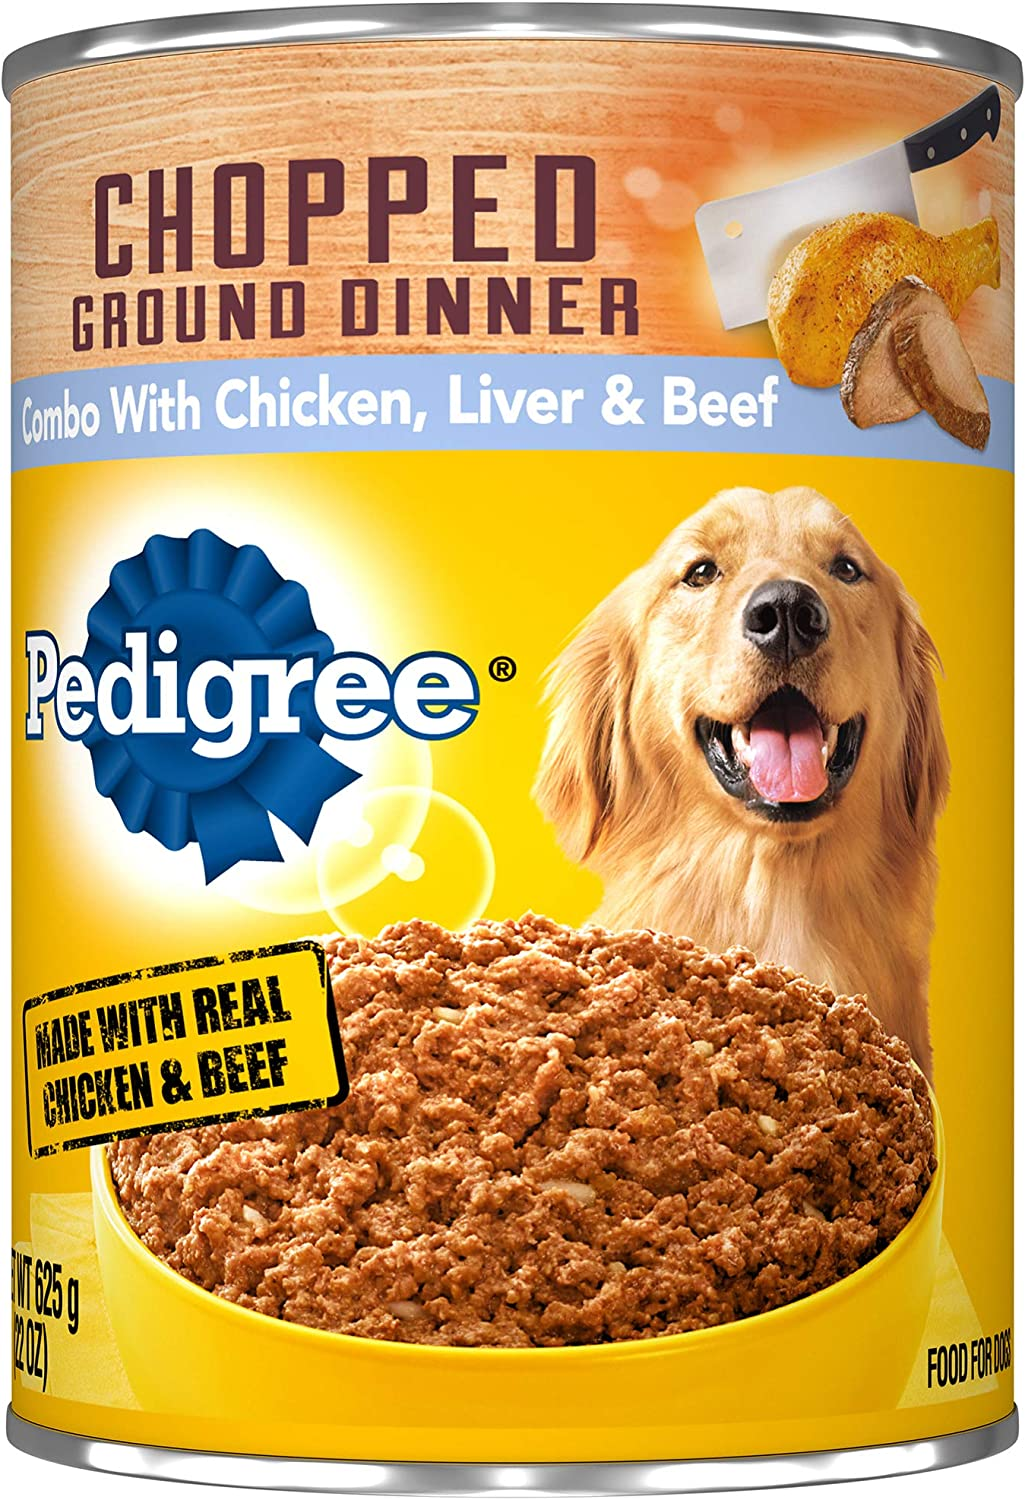 3. Pedigree Chopped Ground Dinner Combo Canned Dog Food